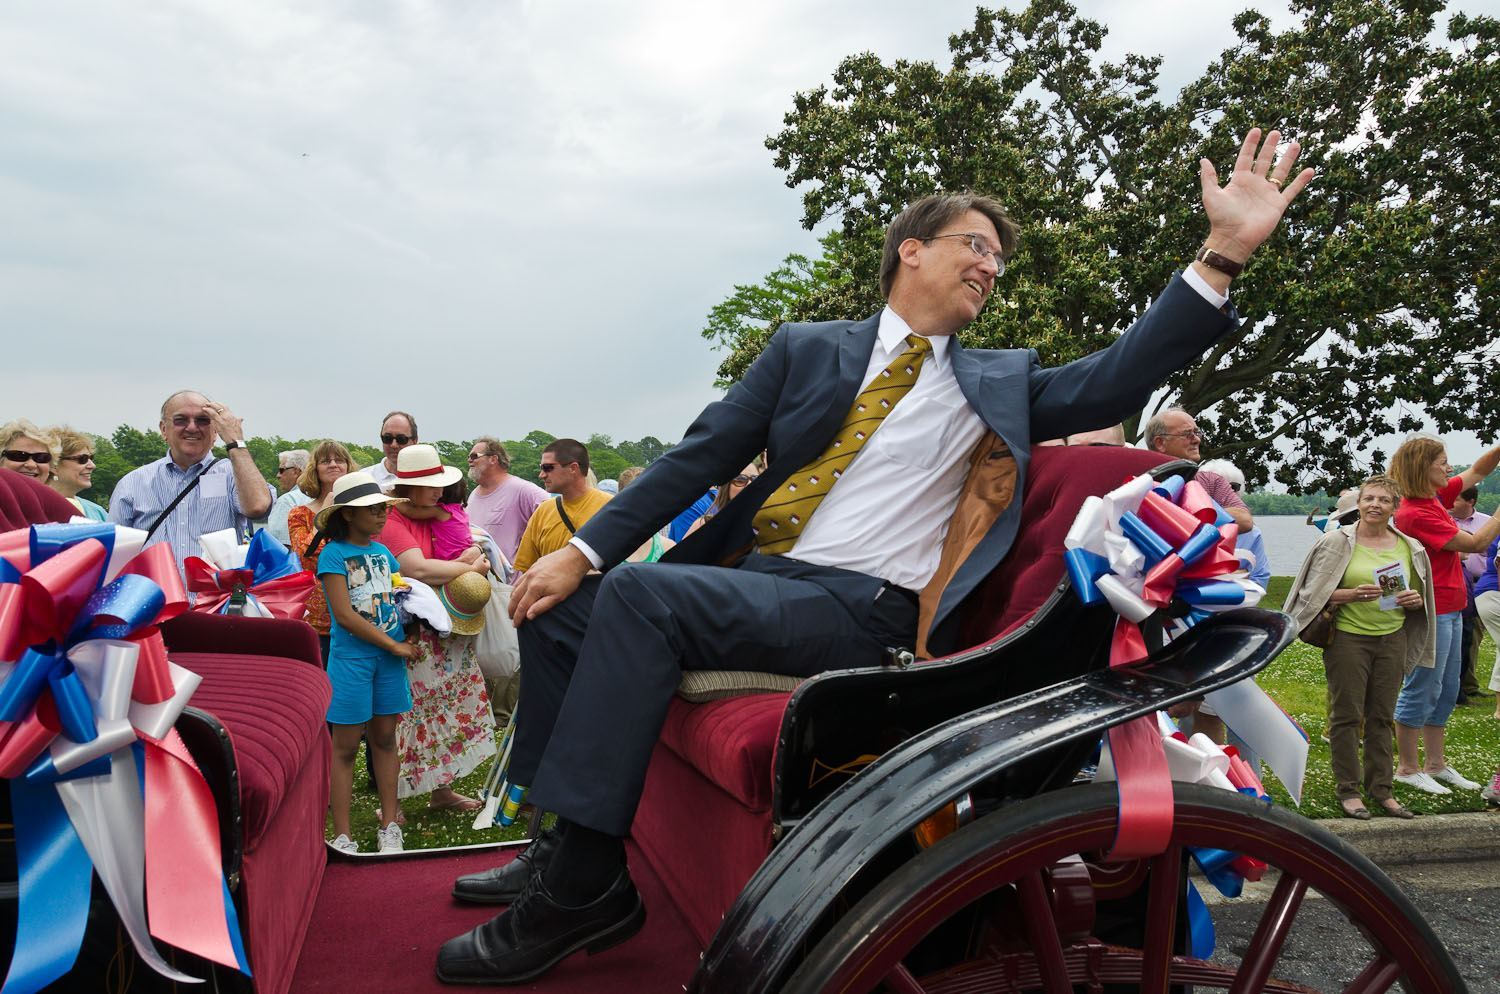 Gov McCrory in his horse-drawn carriage waves to the crowd